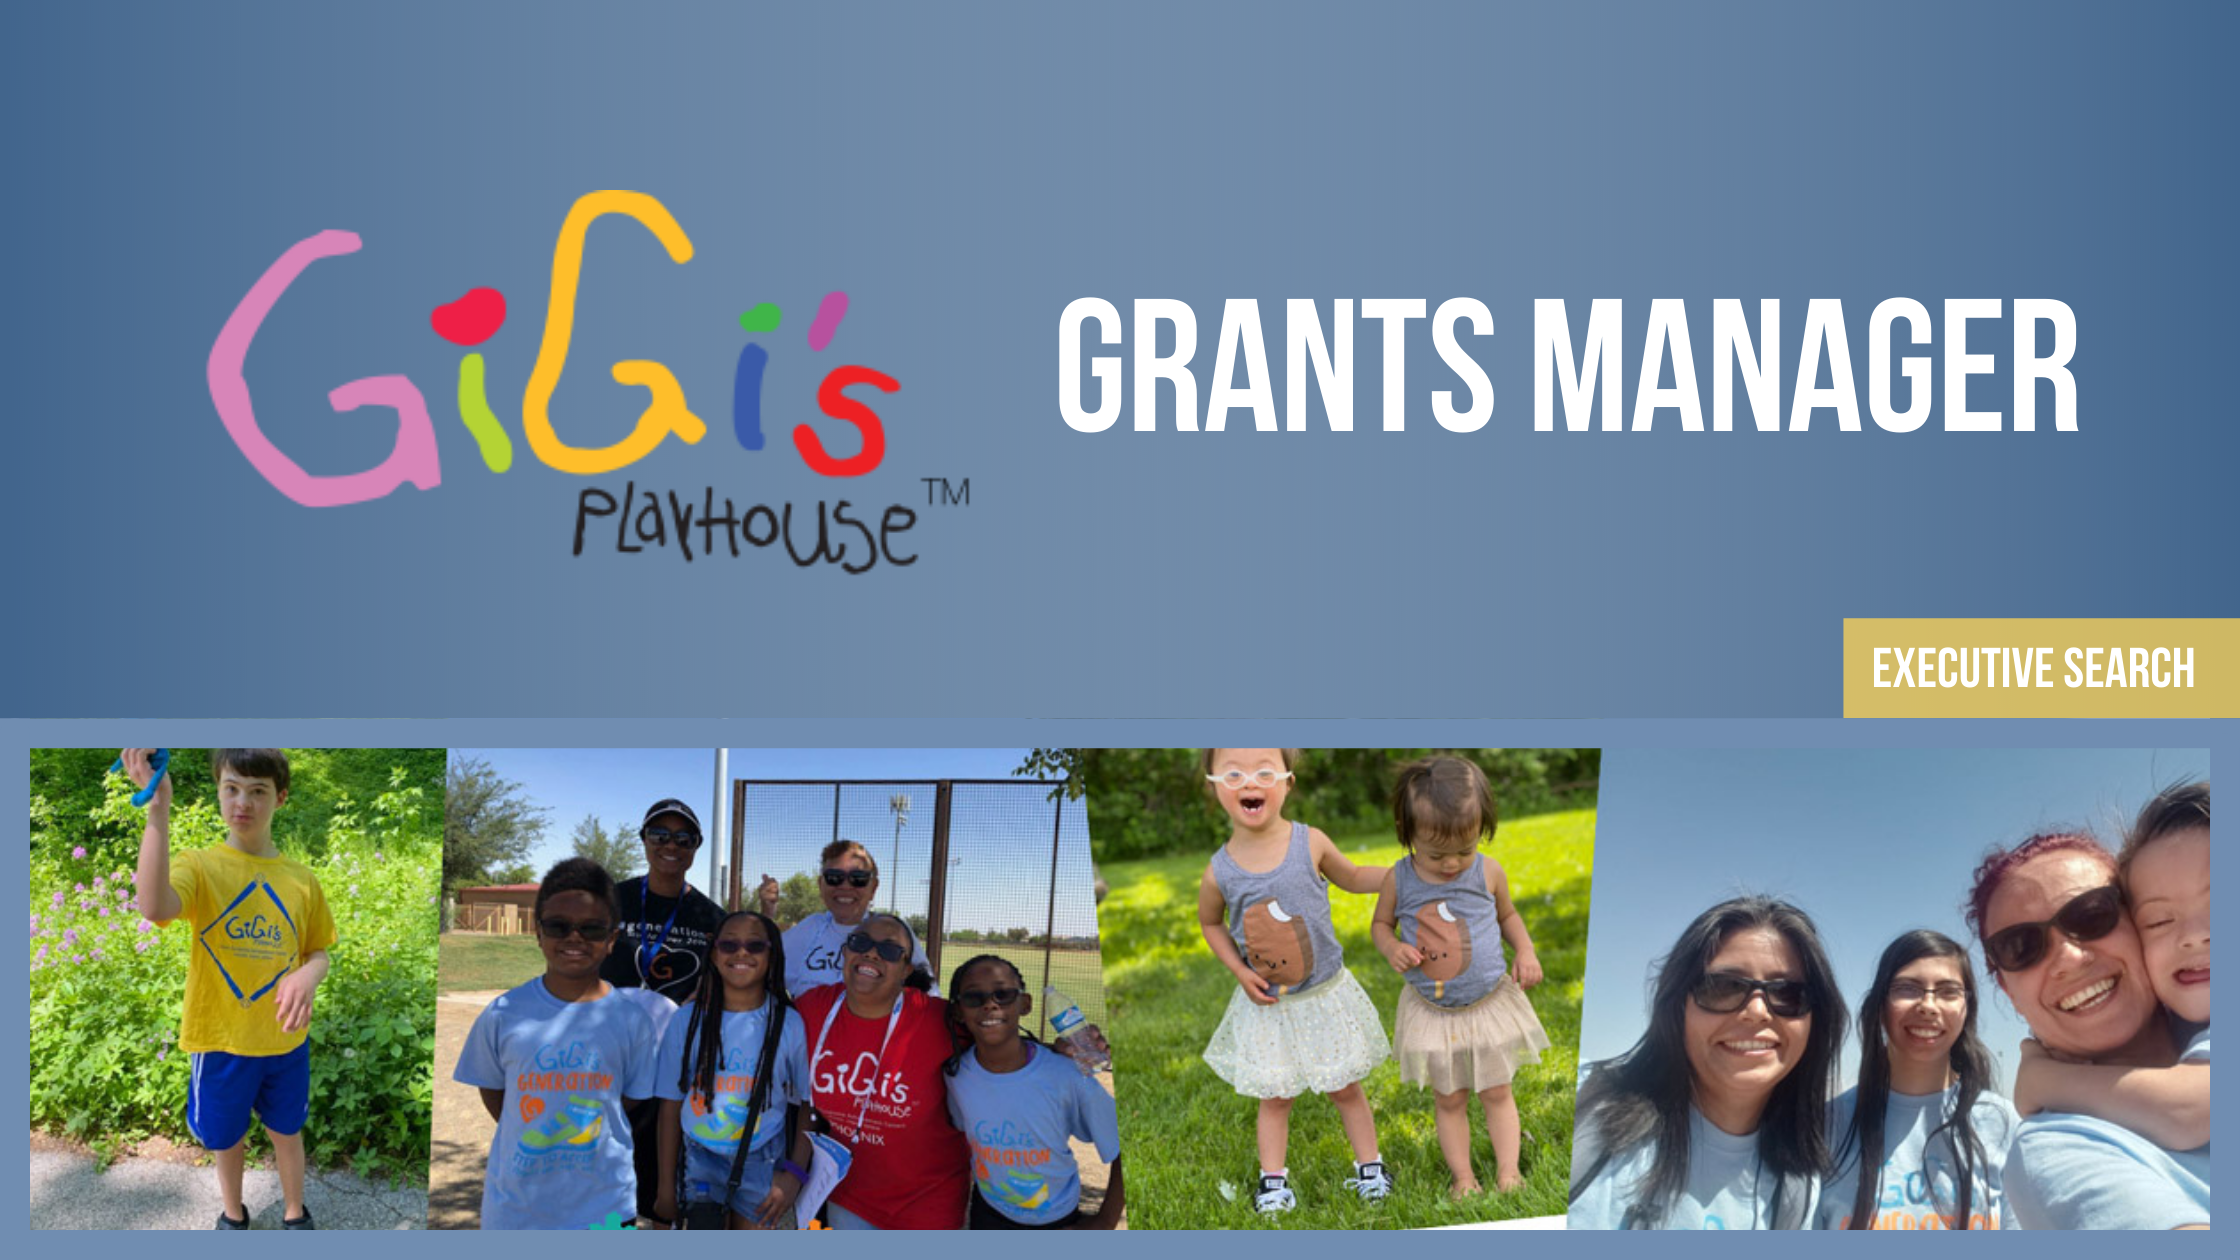 Executive Search: Grants Manager